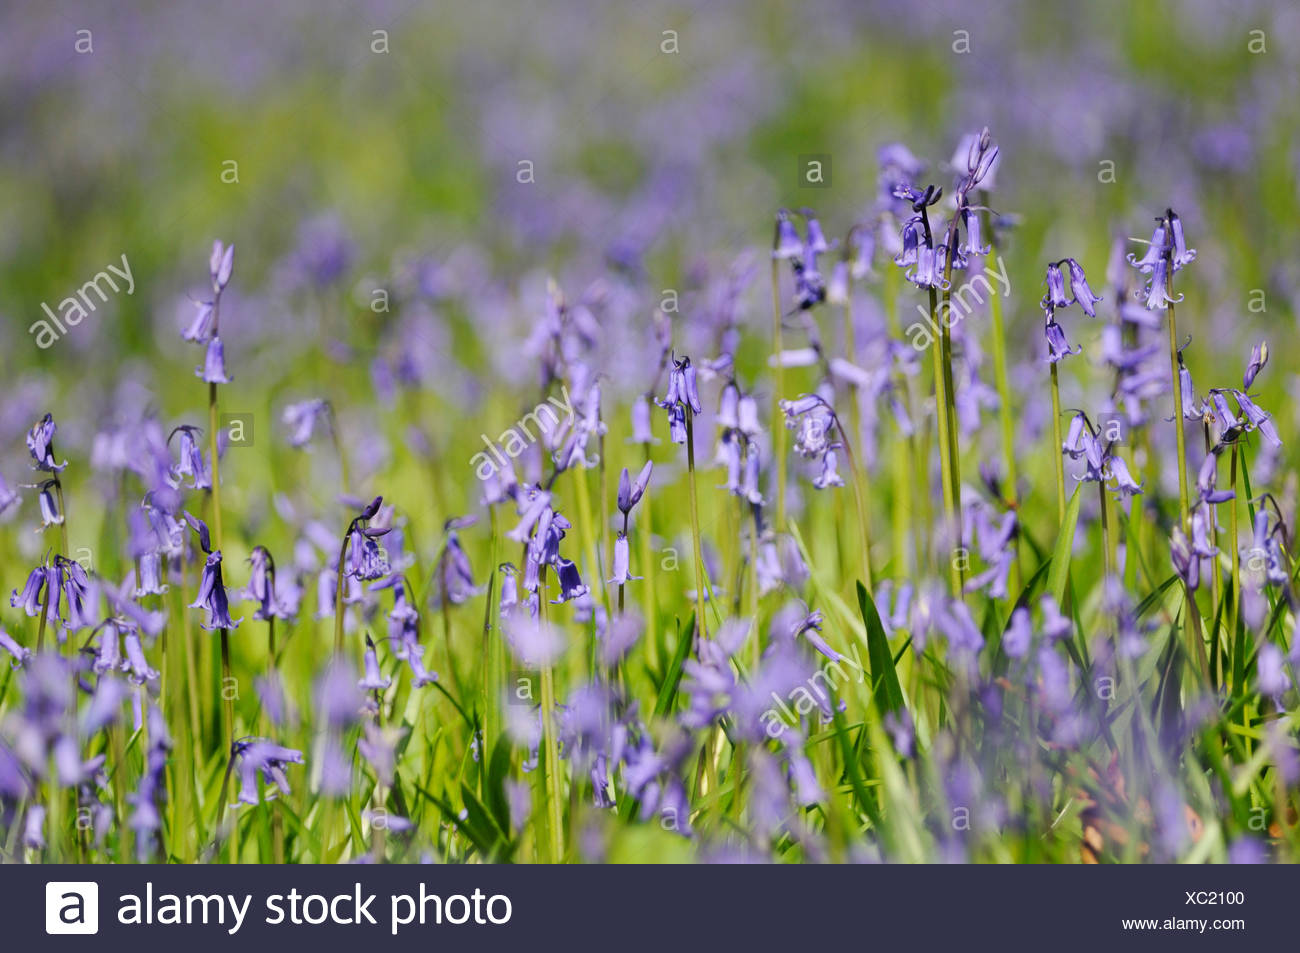 Hyacinthoides non-scripta, English bluebell. Low level shot with shallow focus of upright bluebells growing in a field. - Stock Image